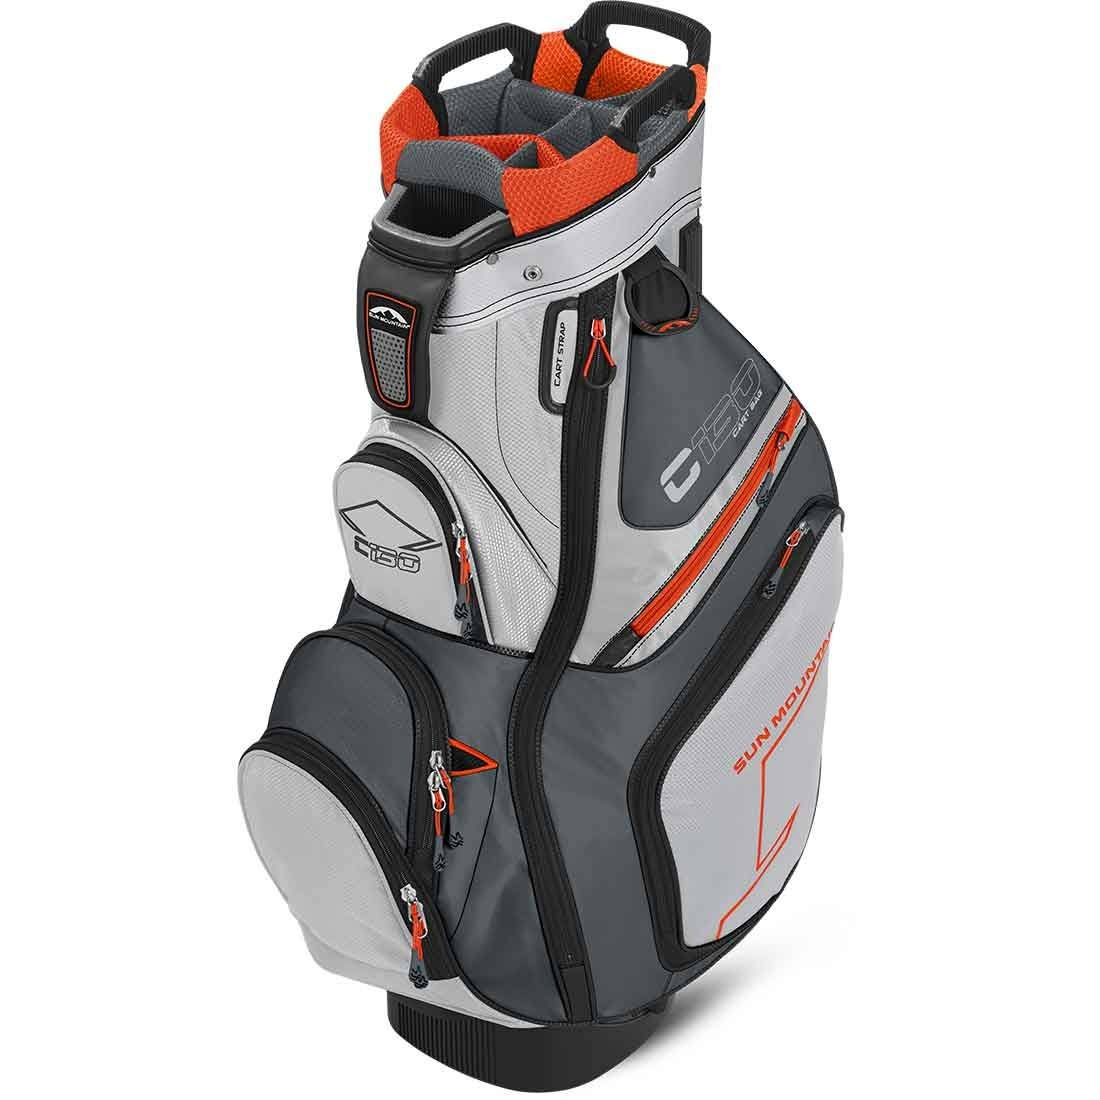 The Best Golf Bags of 2017 | The Ultimate Guide to Golf Bags Push Golf Cart Bag Orange on golf cart heaters propane, golf bag cart with wheels, bag boy carts, street legal golf carts, golf bag motorized carts, golf push cart wheels, golf bag gps, golf cart rain cover, golf pull carts, golf hand carts, golf cart bag combo,